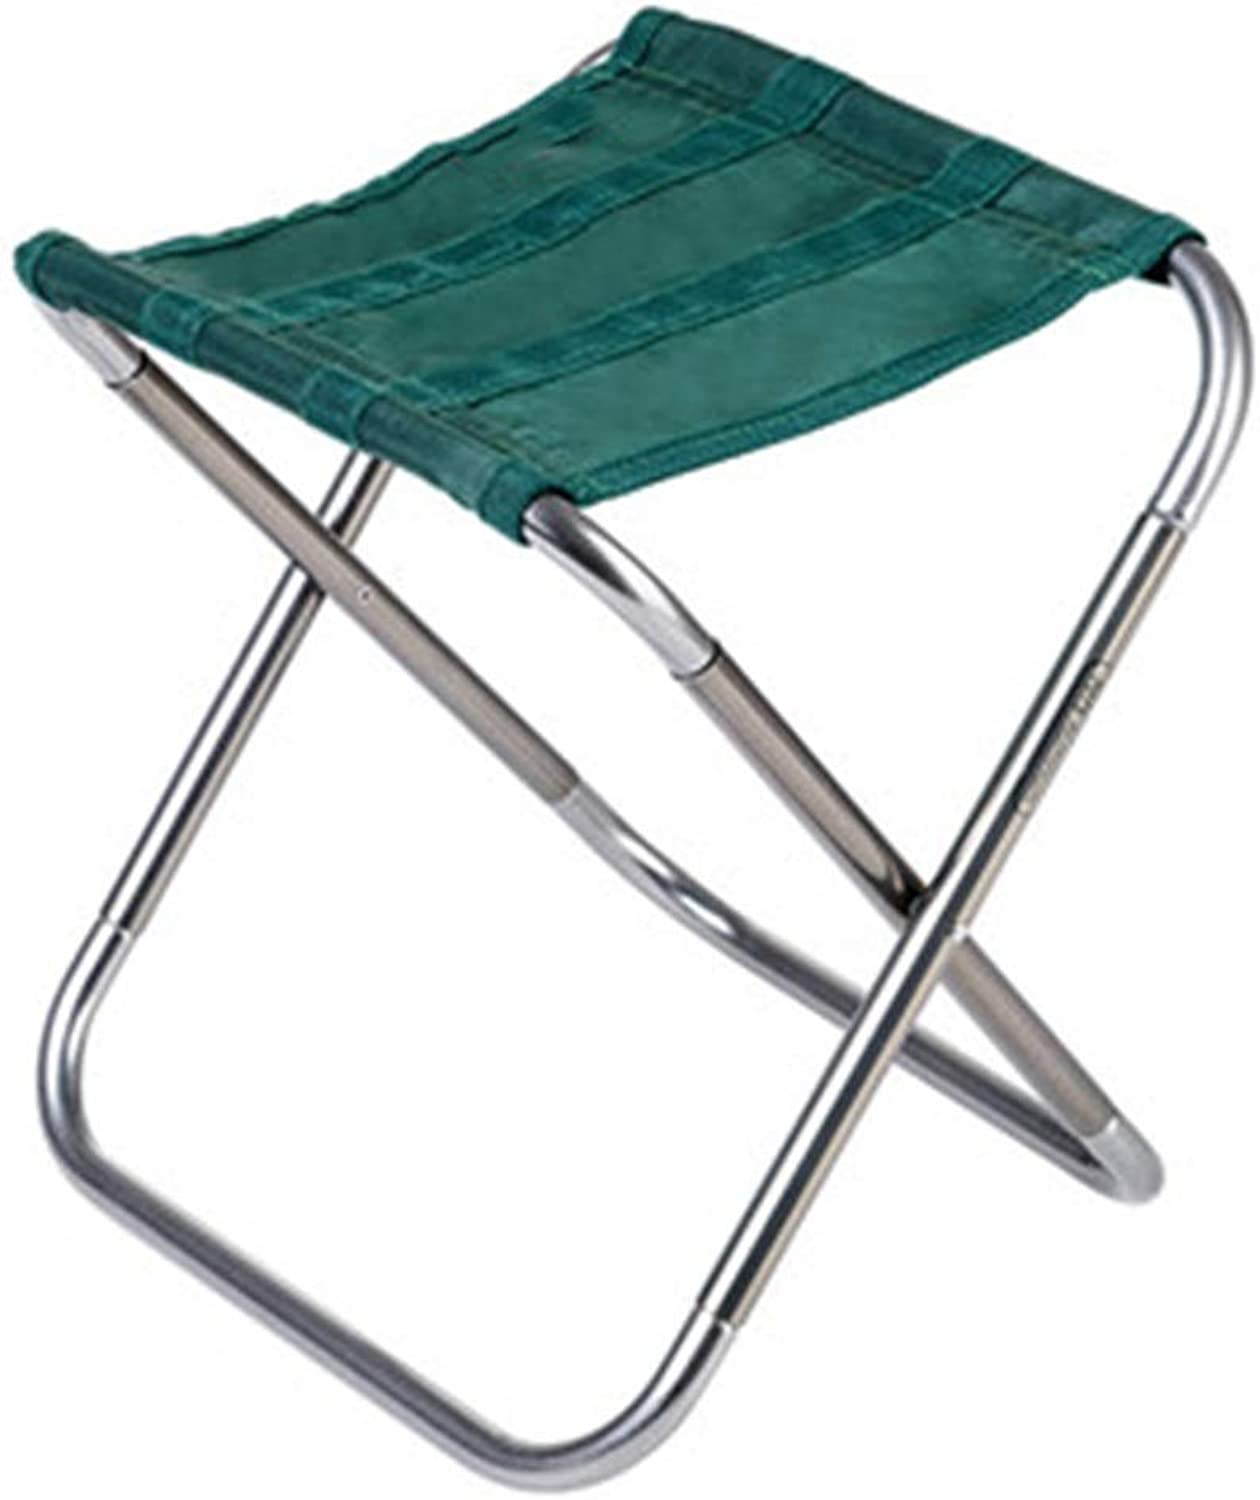 LSXIAO Portable Folding Stool Pouffes and Footstools Lightweight Outdoors Aluminum Alloy Camping Travel Adult Small Bench, 2 colors (color   Green, Size   25x22.4x26cm)